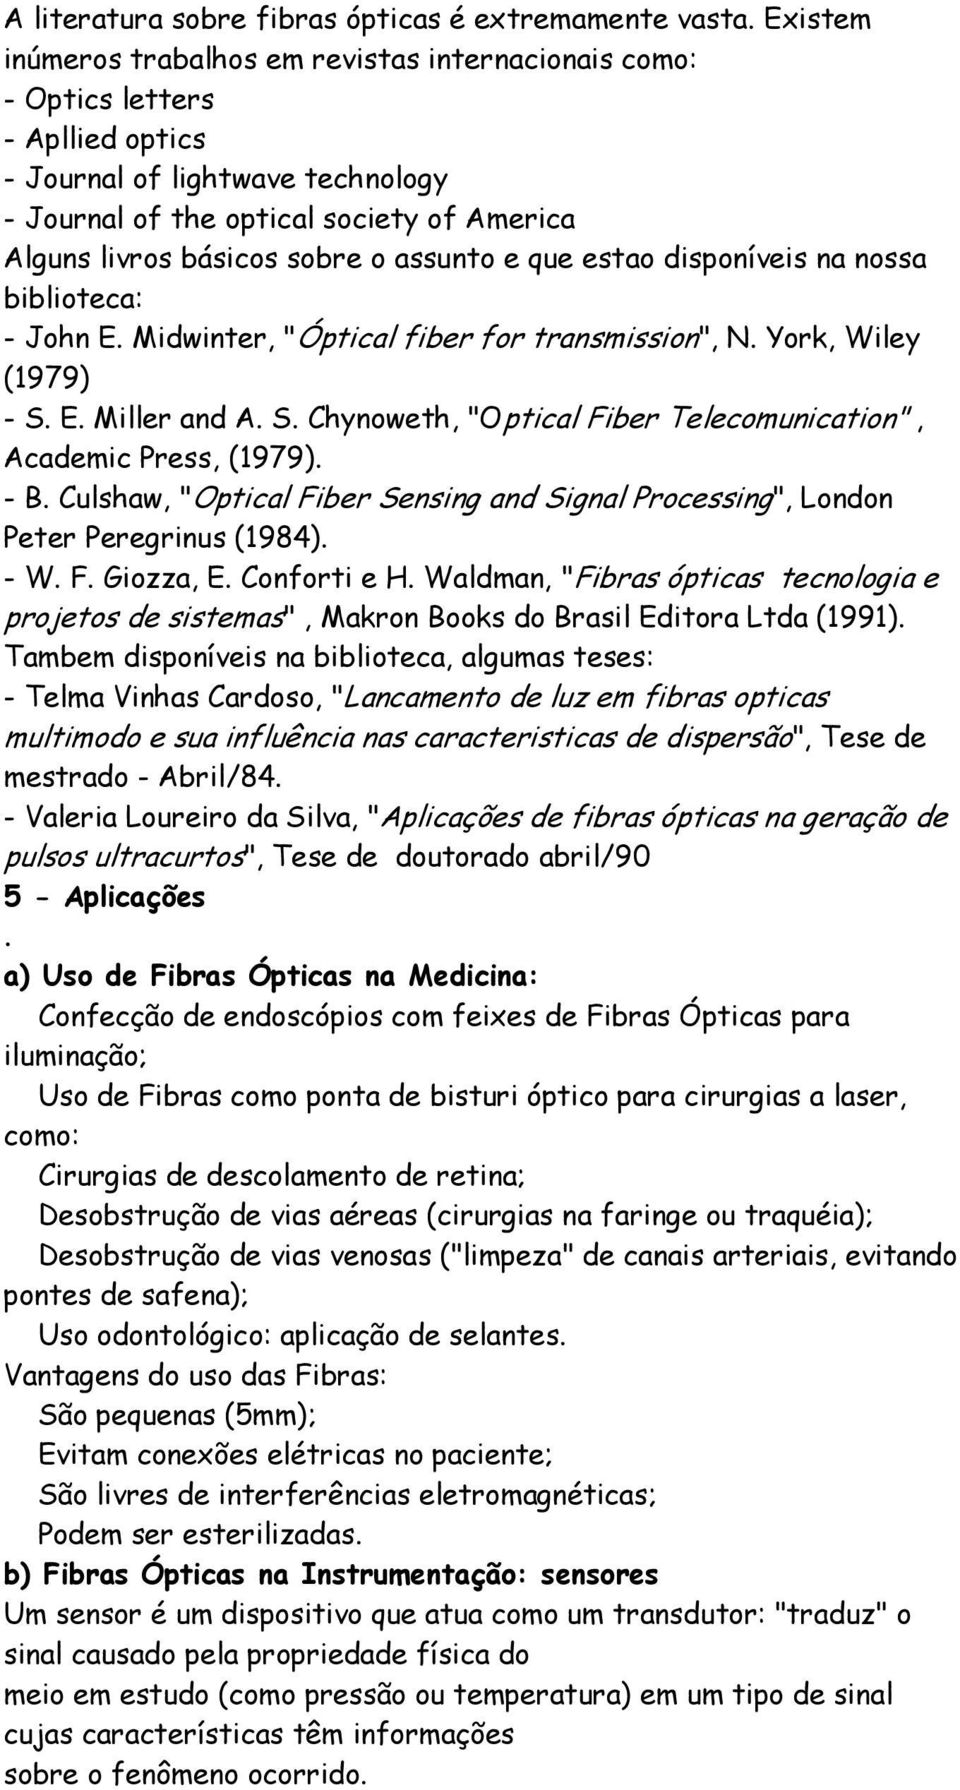 "and A S Chynoweth, ""Optical Fiber Telecomunication"", Academic Press, (1979) - B Culshaw, ""Optical Fiber Sensing and Signal Processing"", London Peter Peregrinus (1984) - W F Giozza, E Conforti e H"